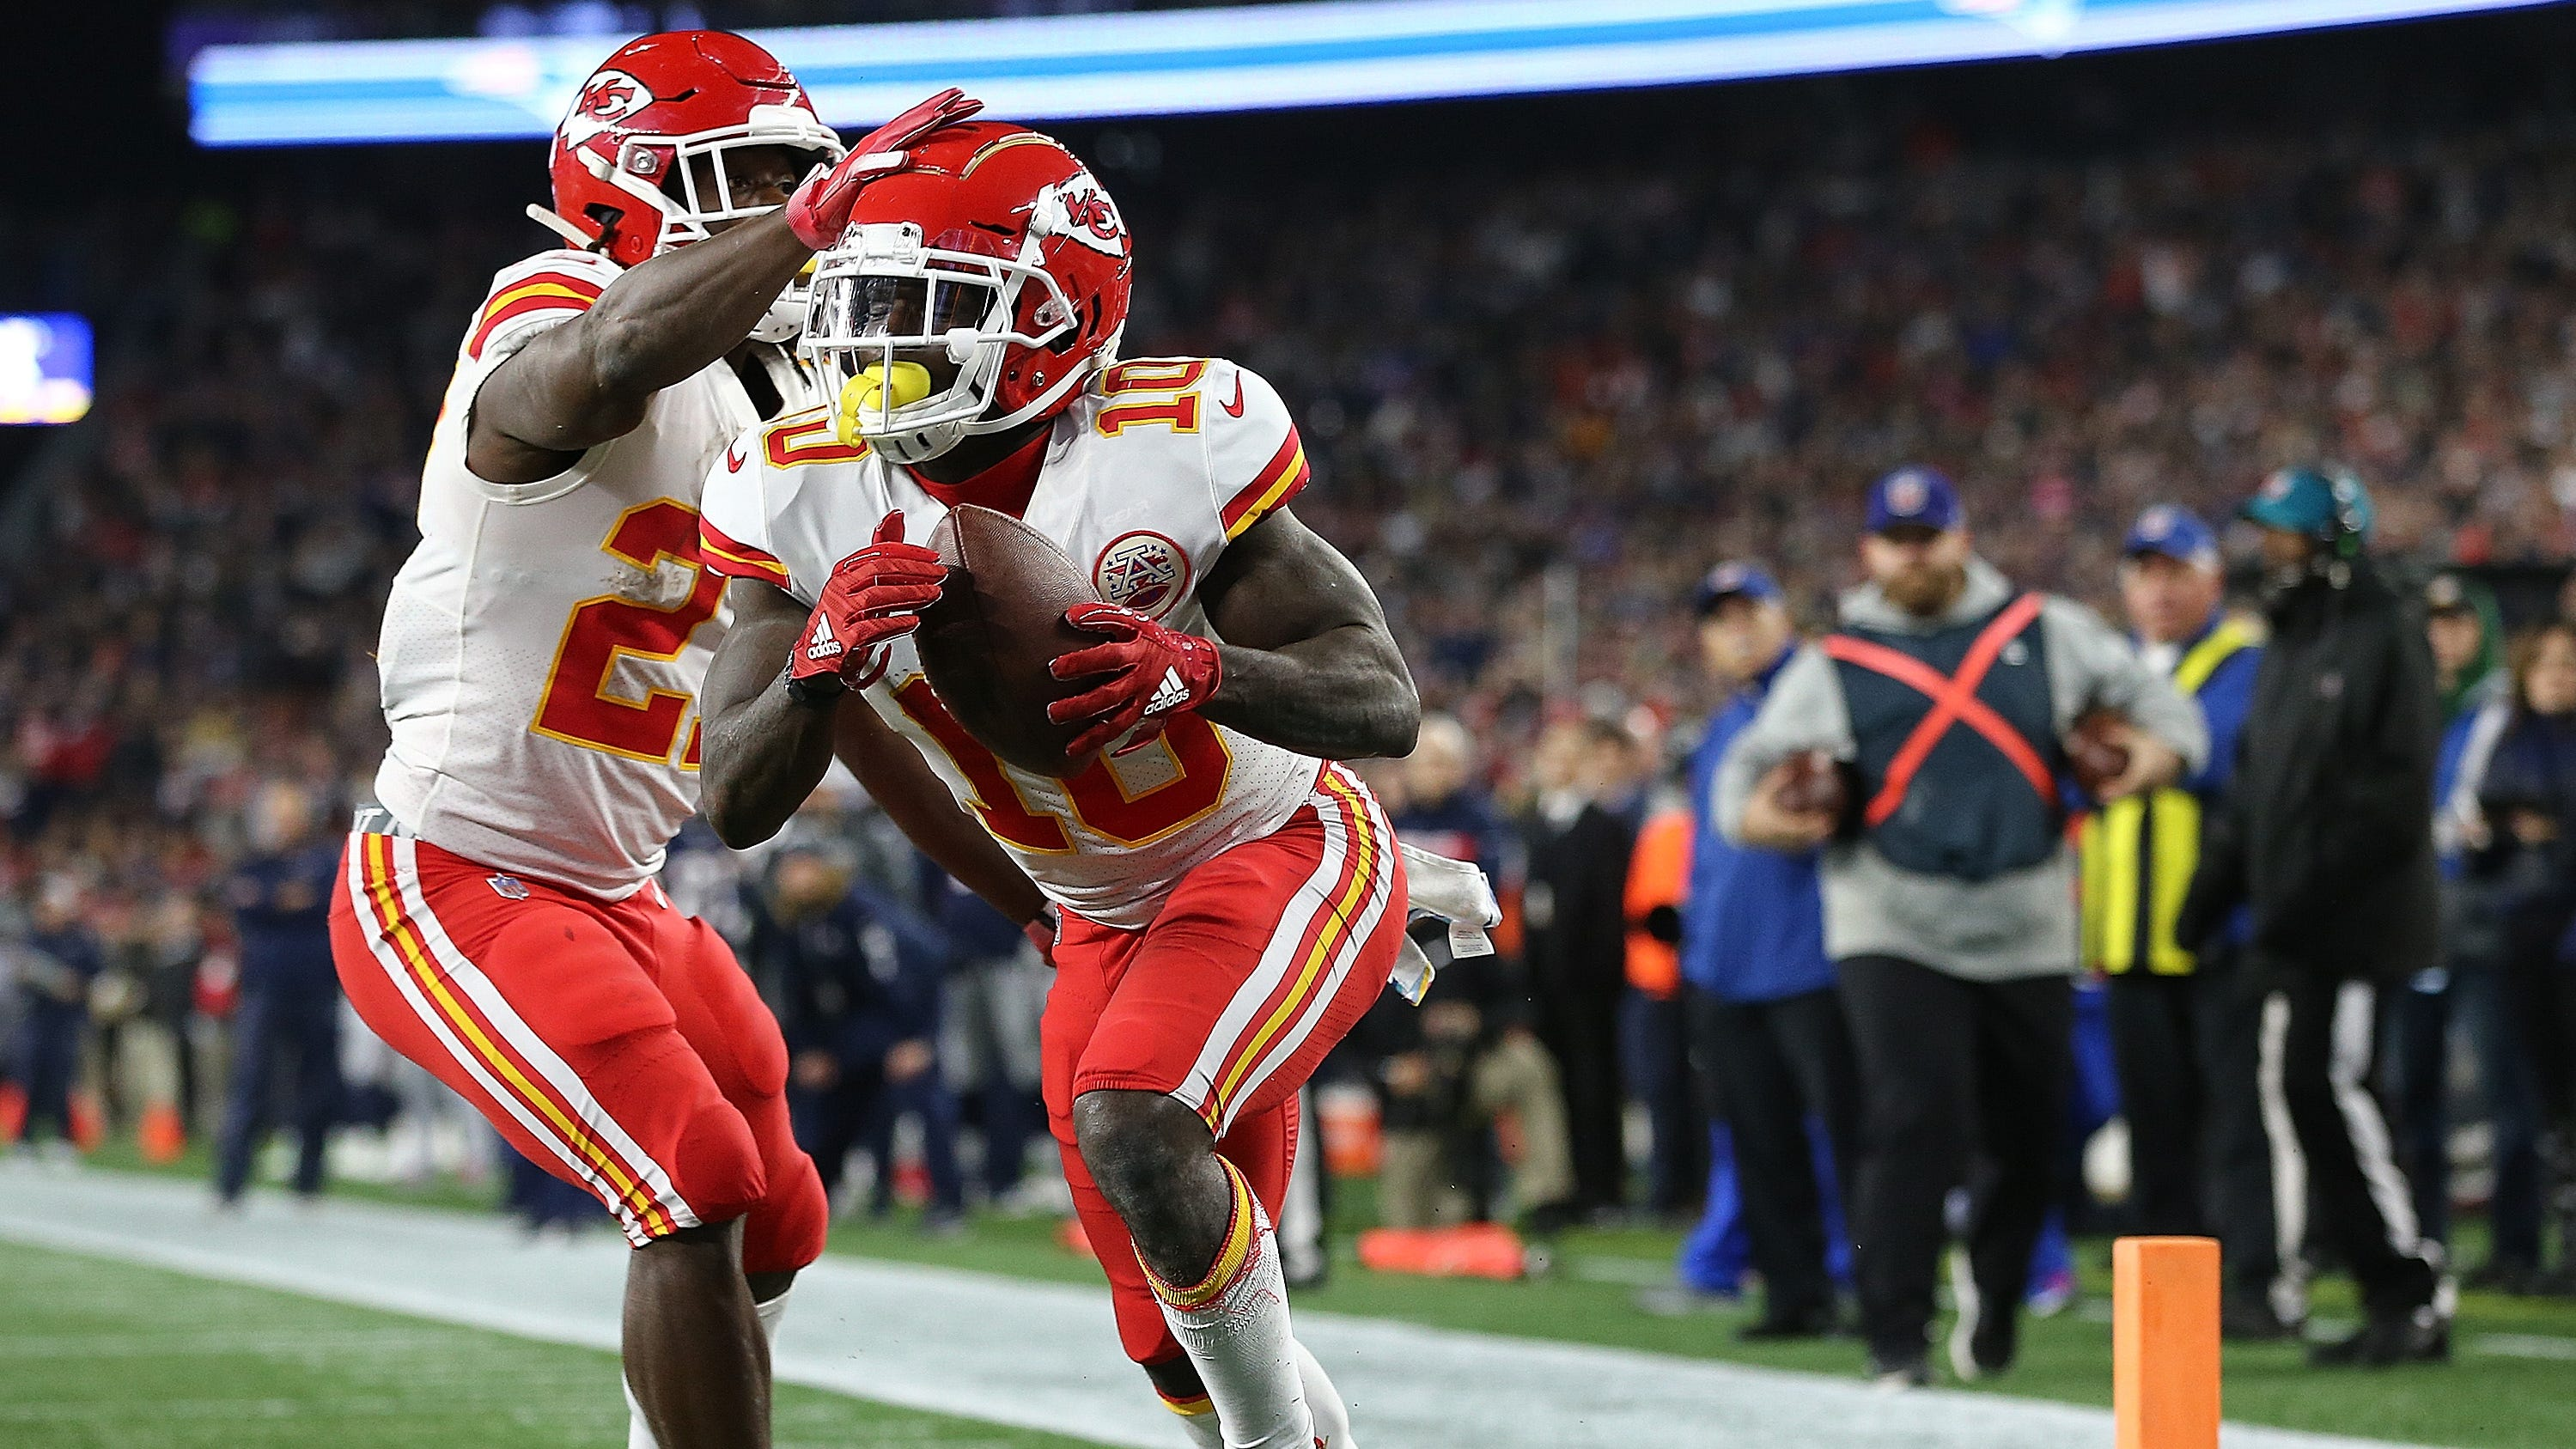 Patriots fan throws beer, others give middle finger to Chiefs WR Tyreek Hill